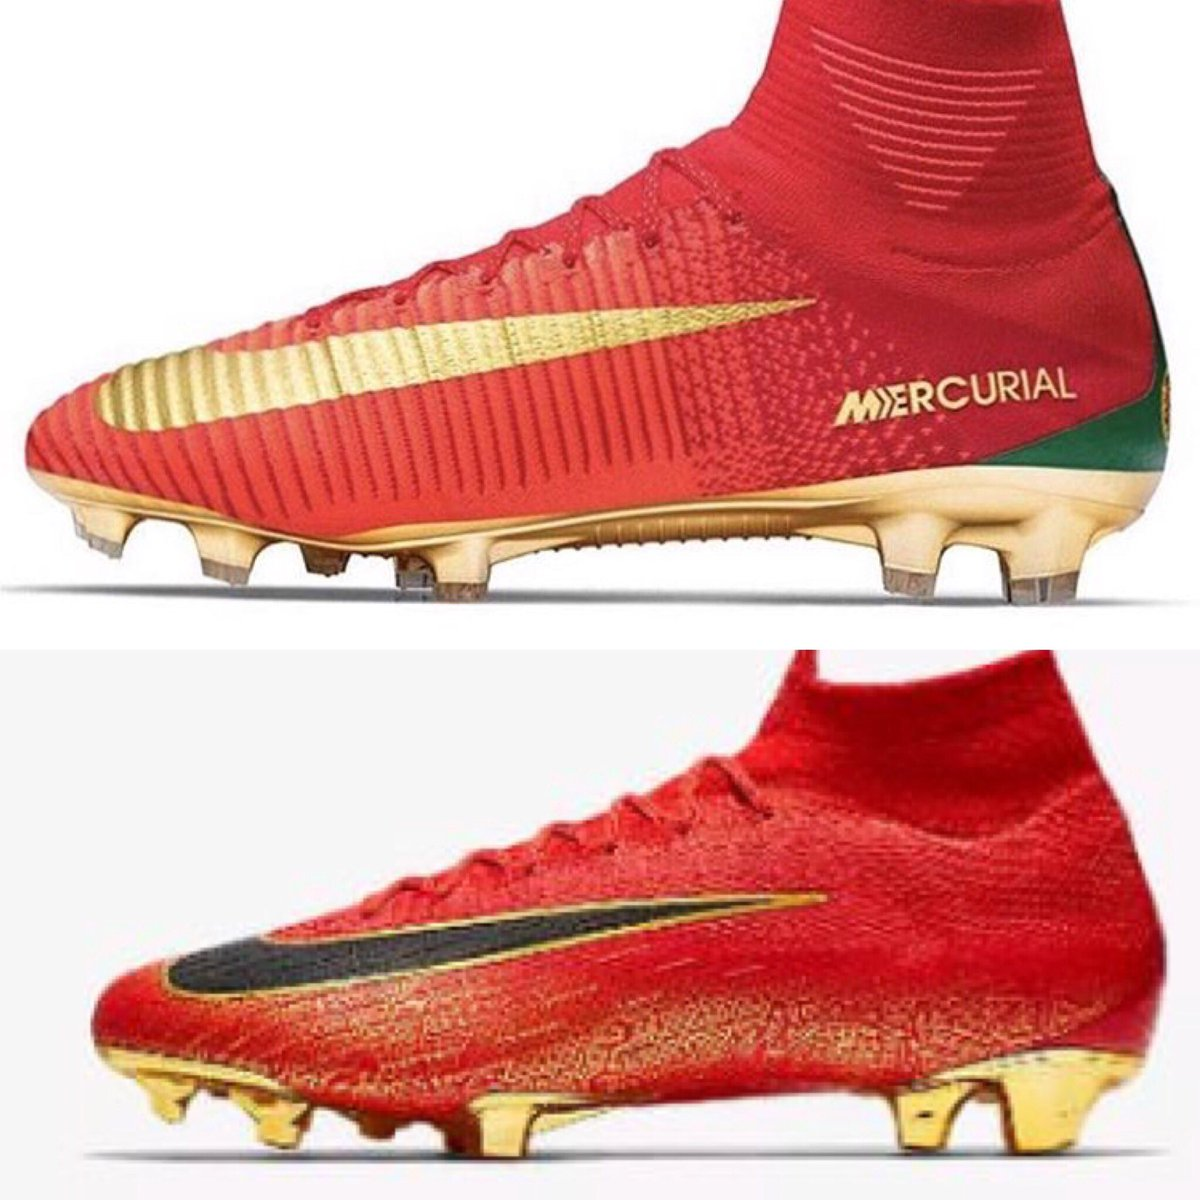 nike cr7 football shoes india on sale OFF69% Discounts